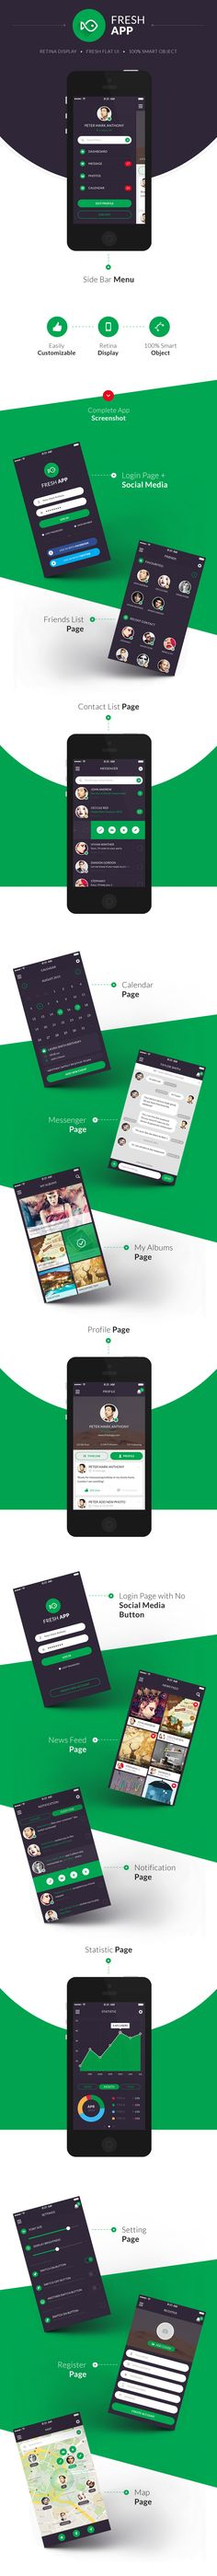 Fresh Flat Mobile UI Kit Download here: http://graphicriver.net/item/fresh-flat-mobile-ui-kit/7603486